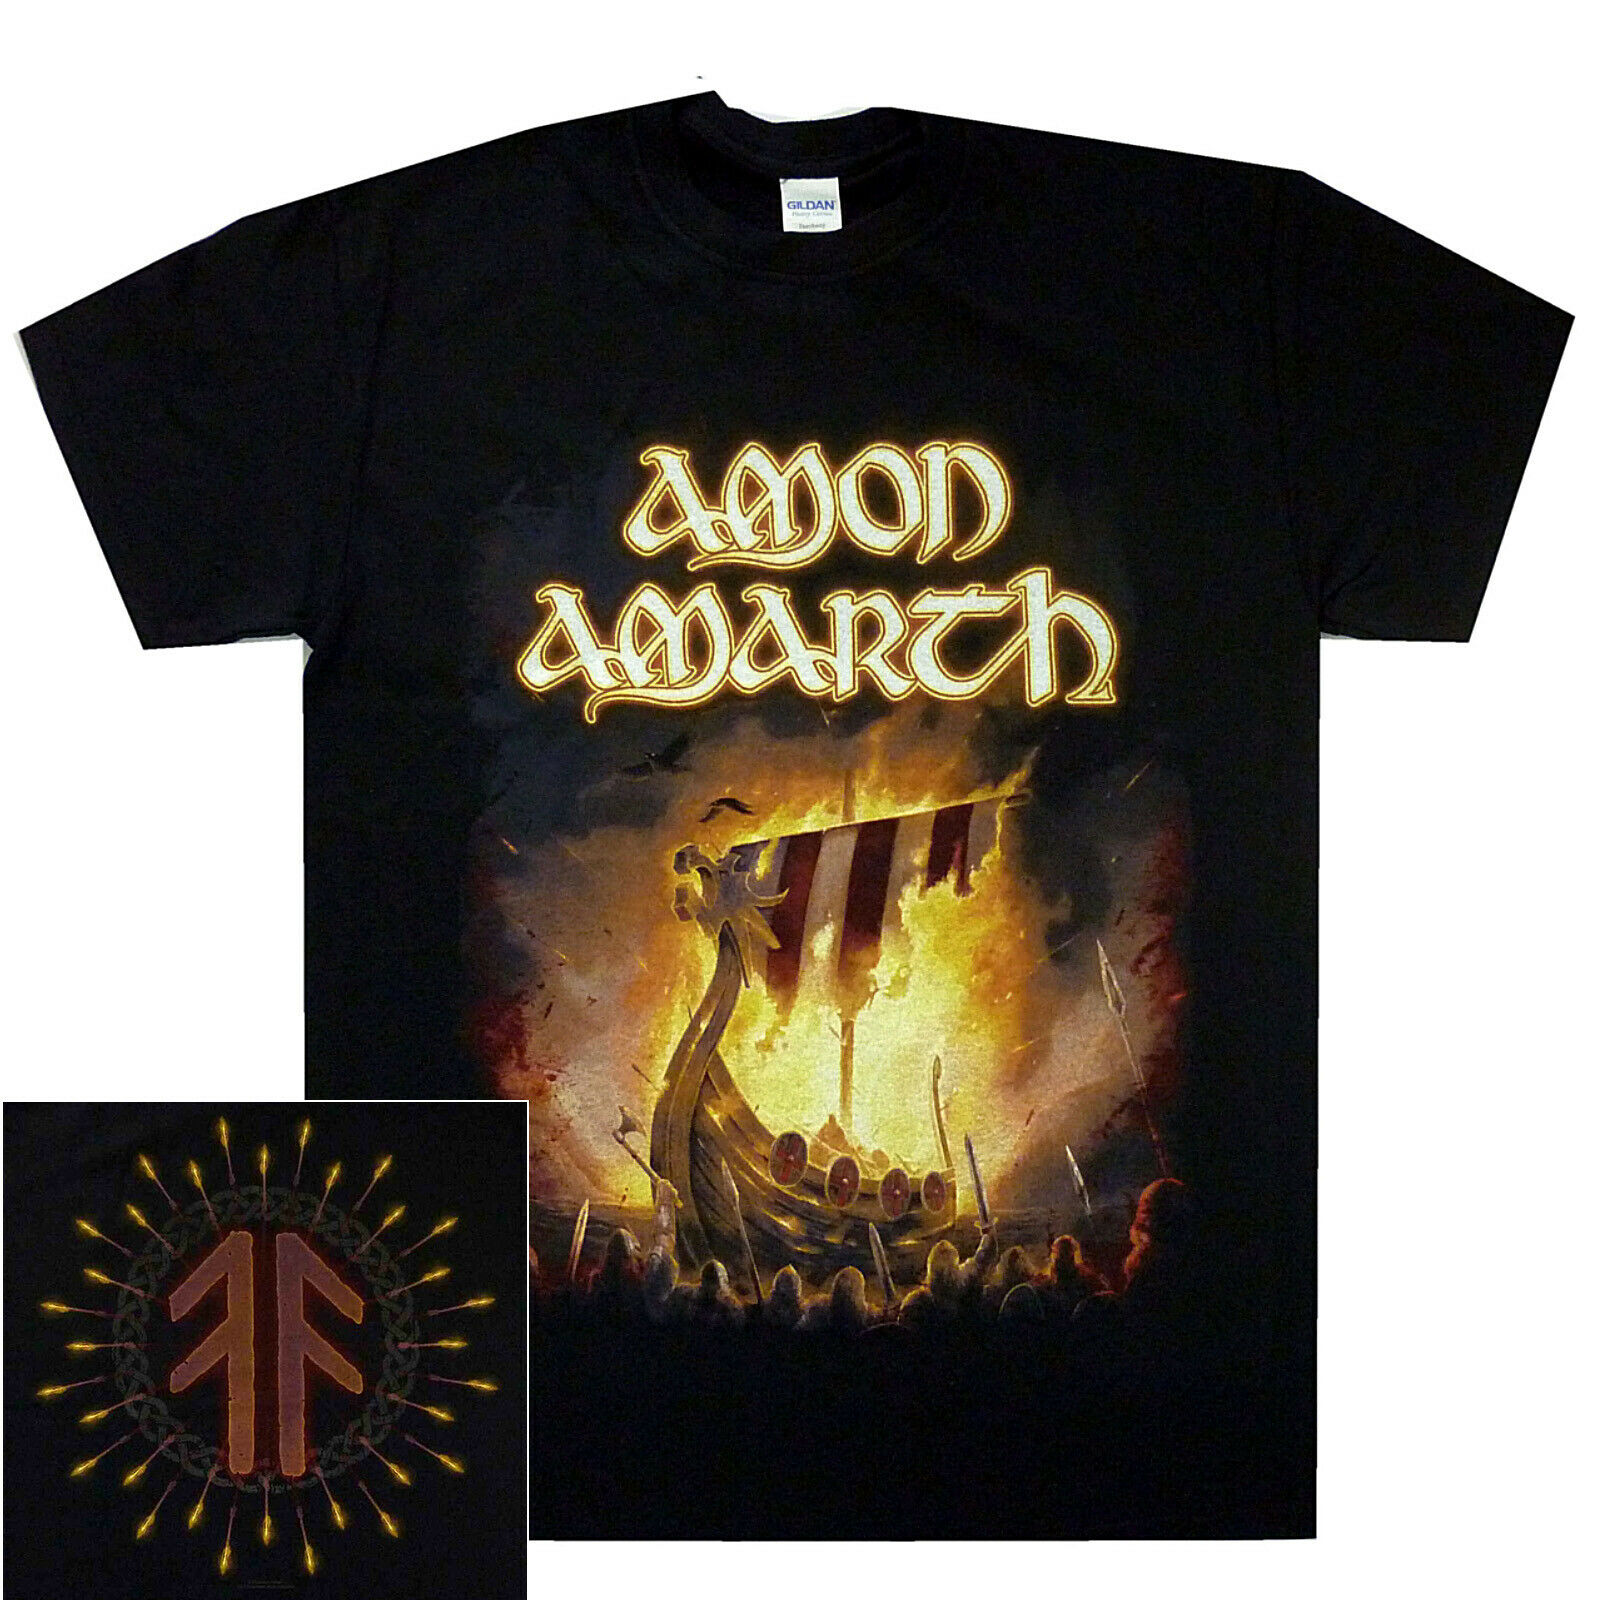 Amon Amarth 1000 Burning Arrows Shirt S M L XL XXL Official Metal T-Shirt Tshirt